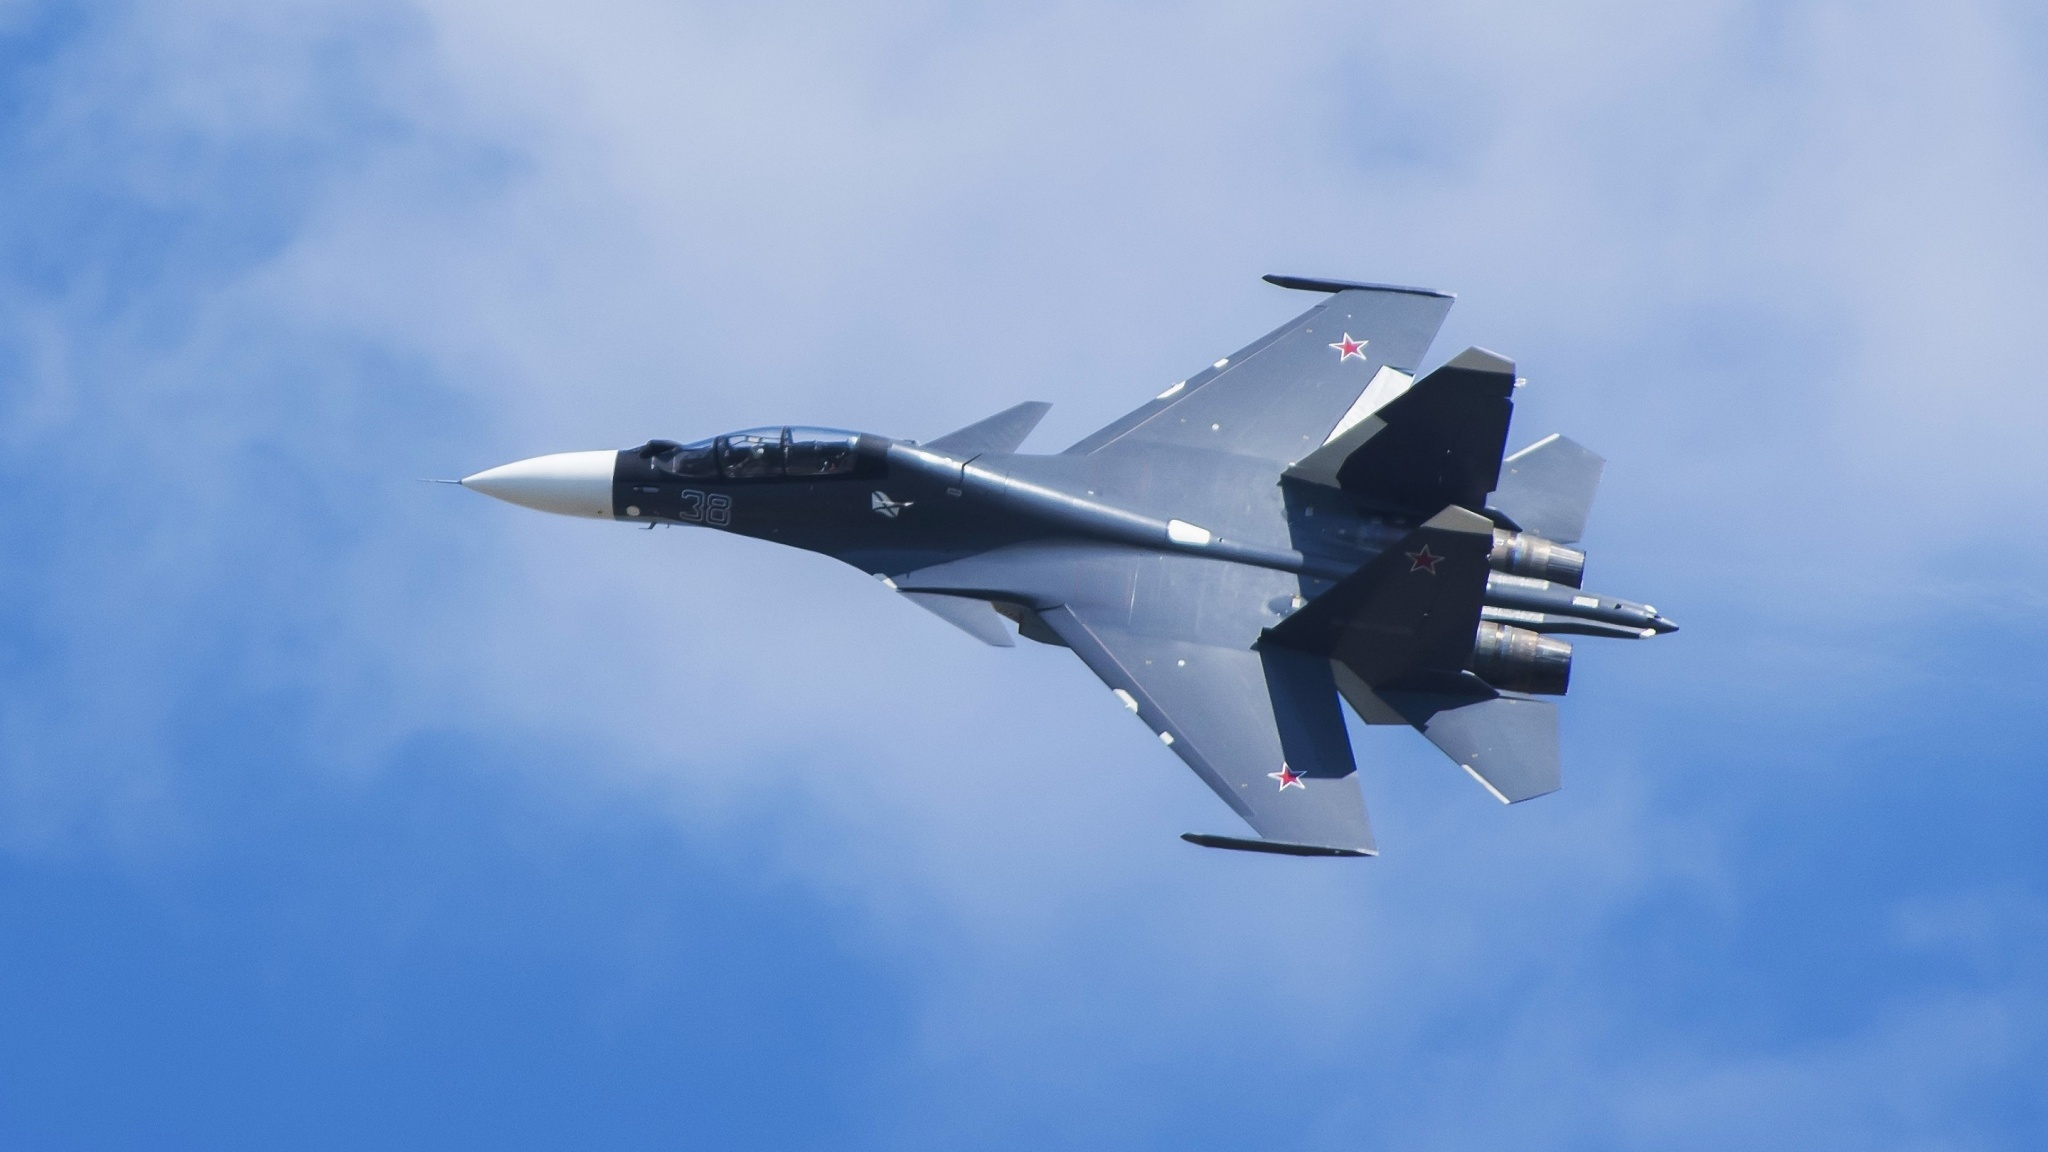 Su-30cm Double Multi-Purpose Fighter